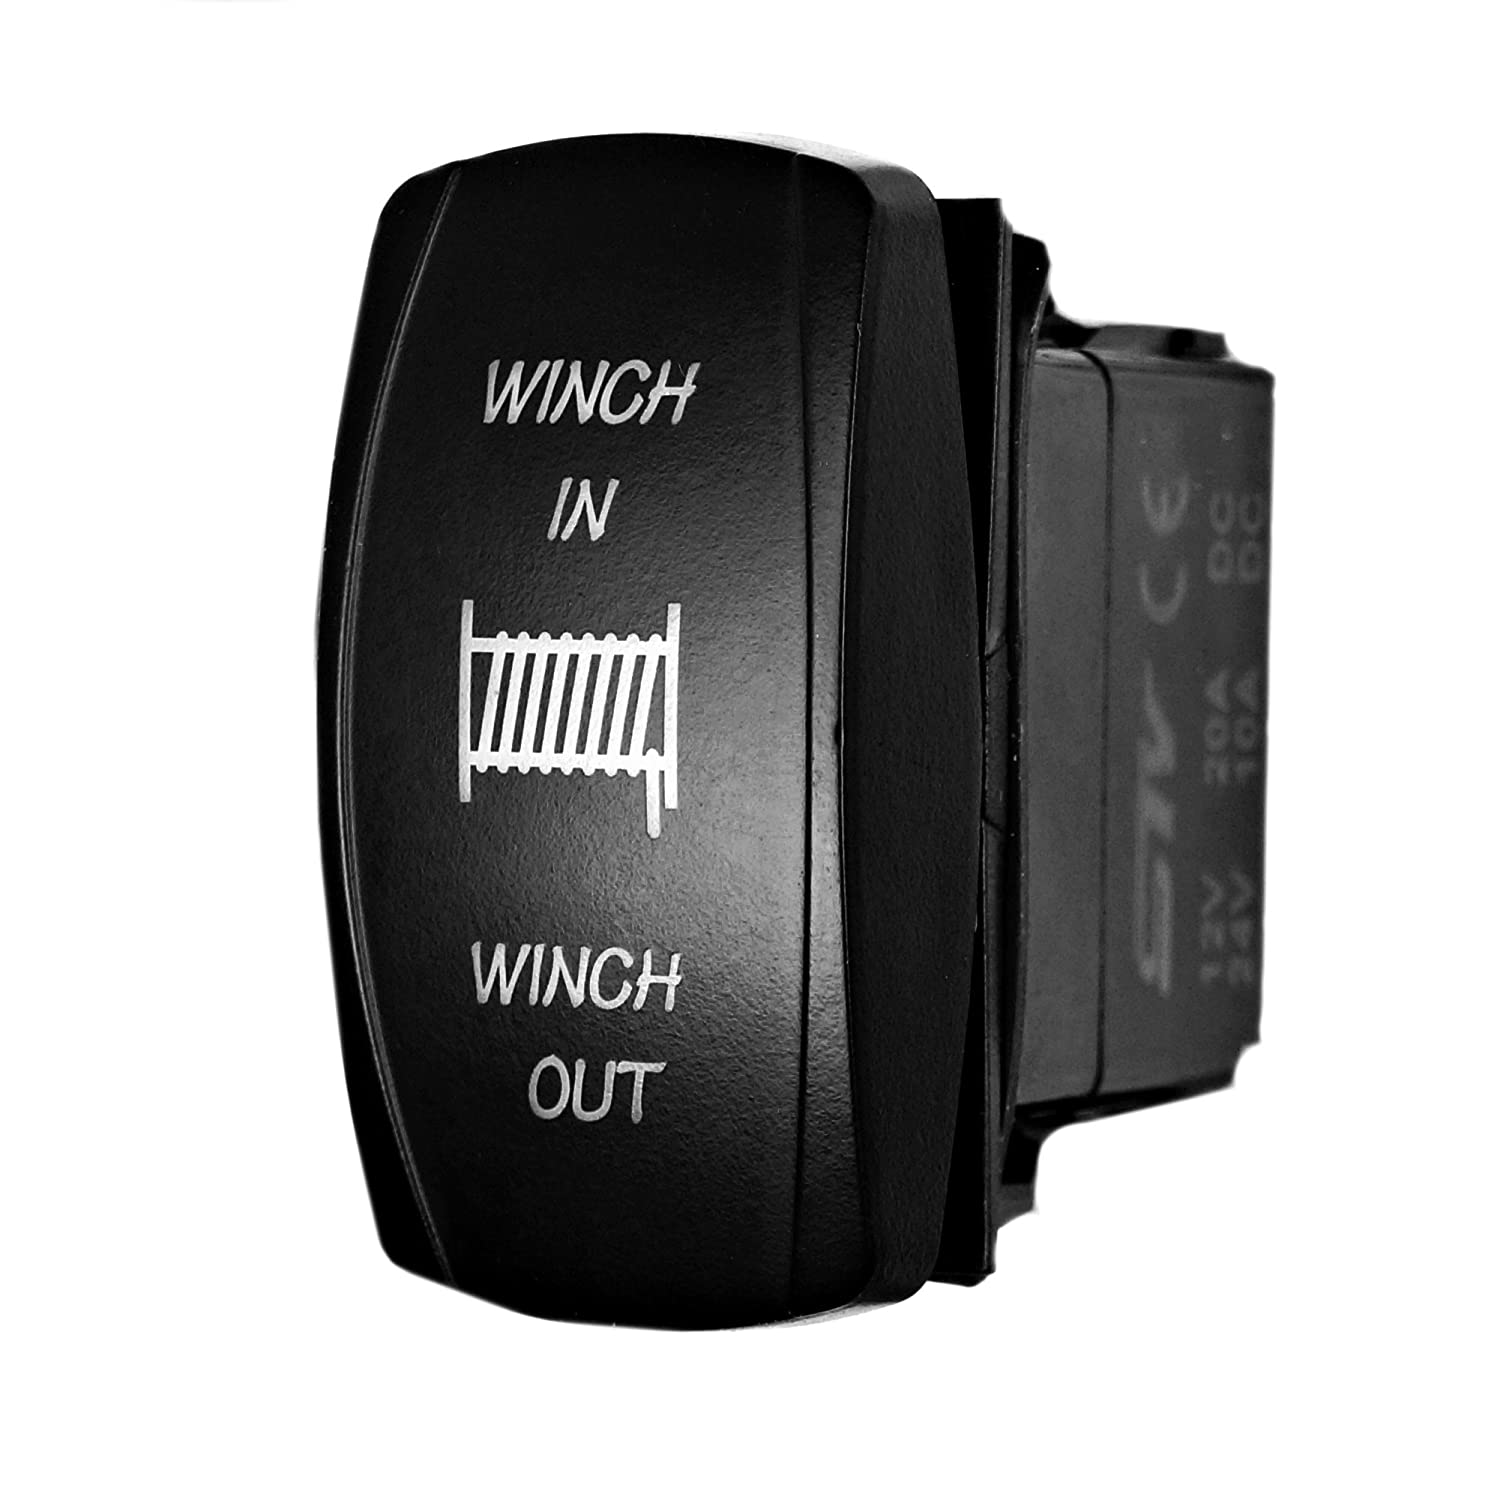 Stv Motorsports Winch Switch Wiring Diagram - Wiring Diagram For ...